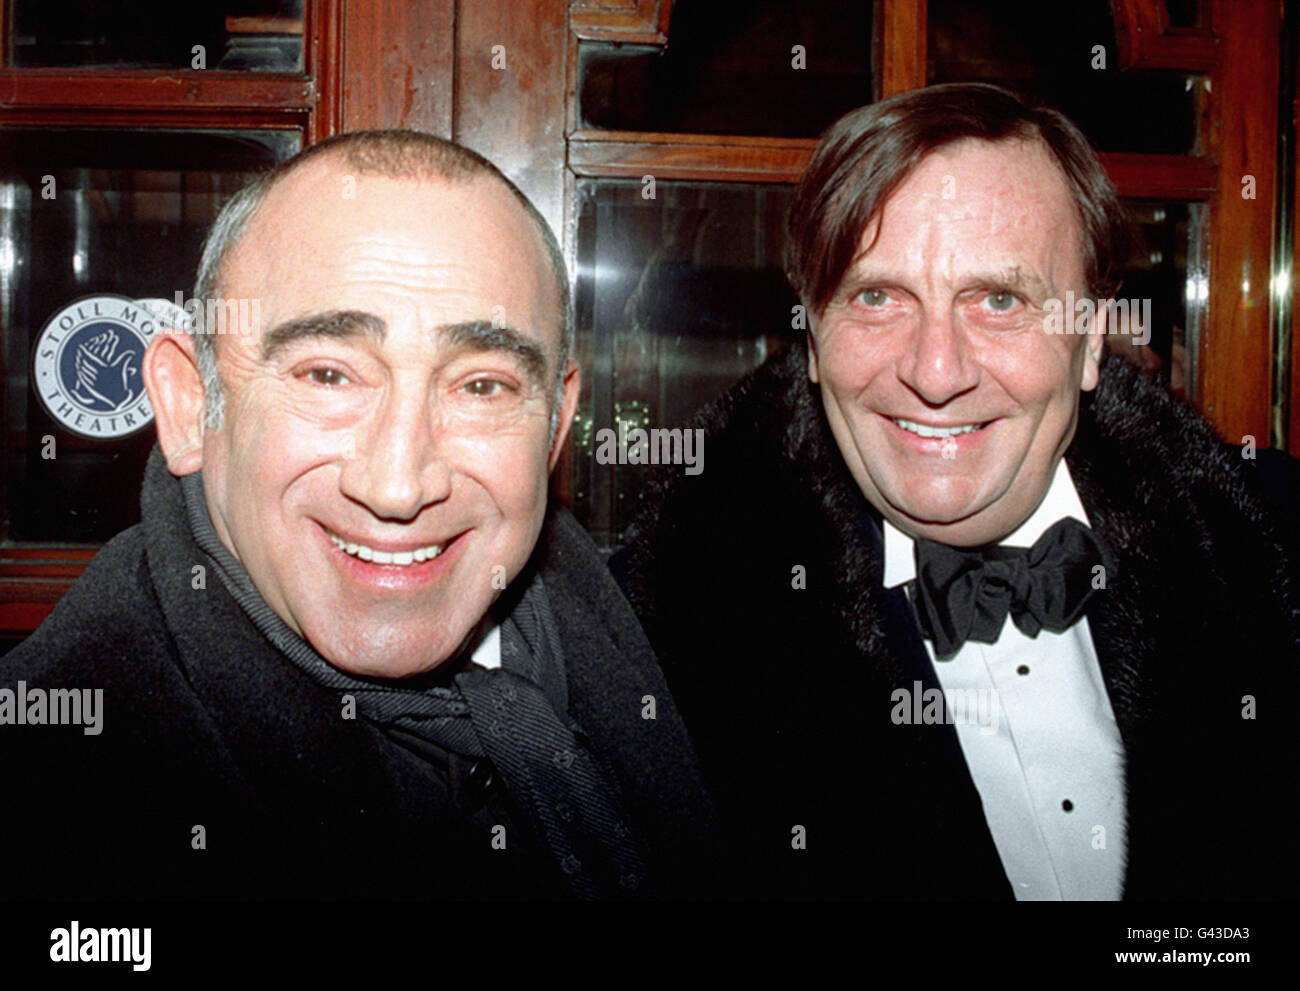 LIONEL BART & BARRY HUMPHRIES - Stock Image